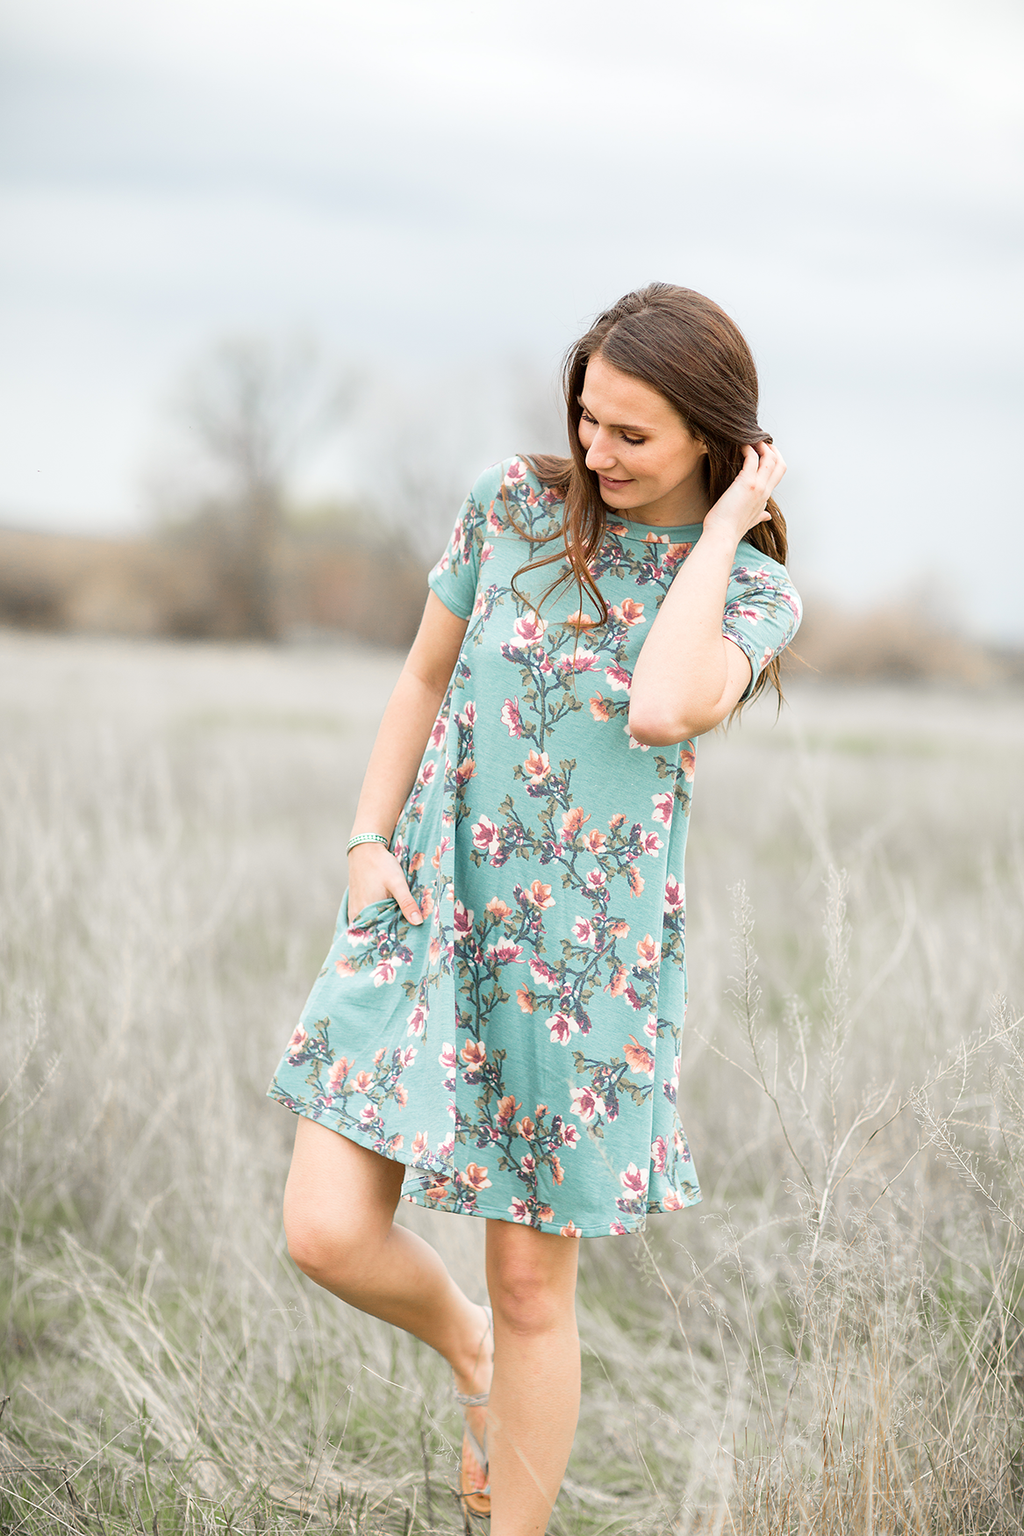 Flair of Floral Dress in Light Teal